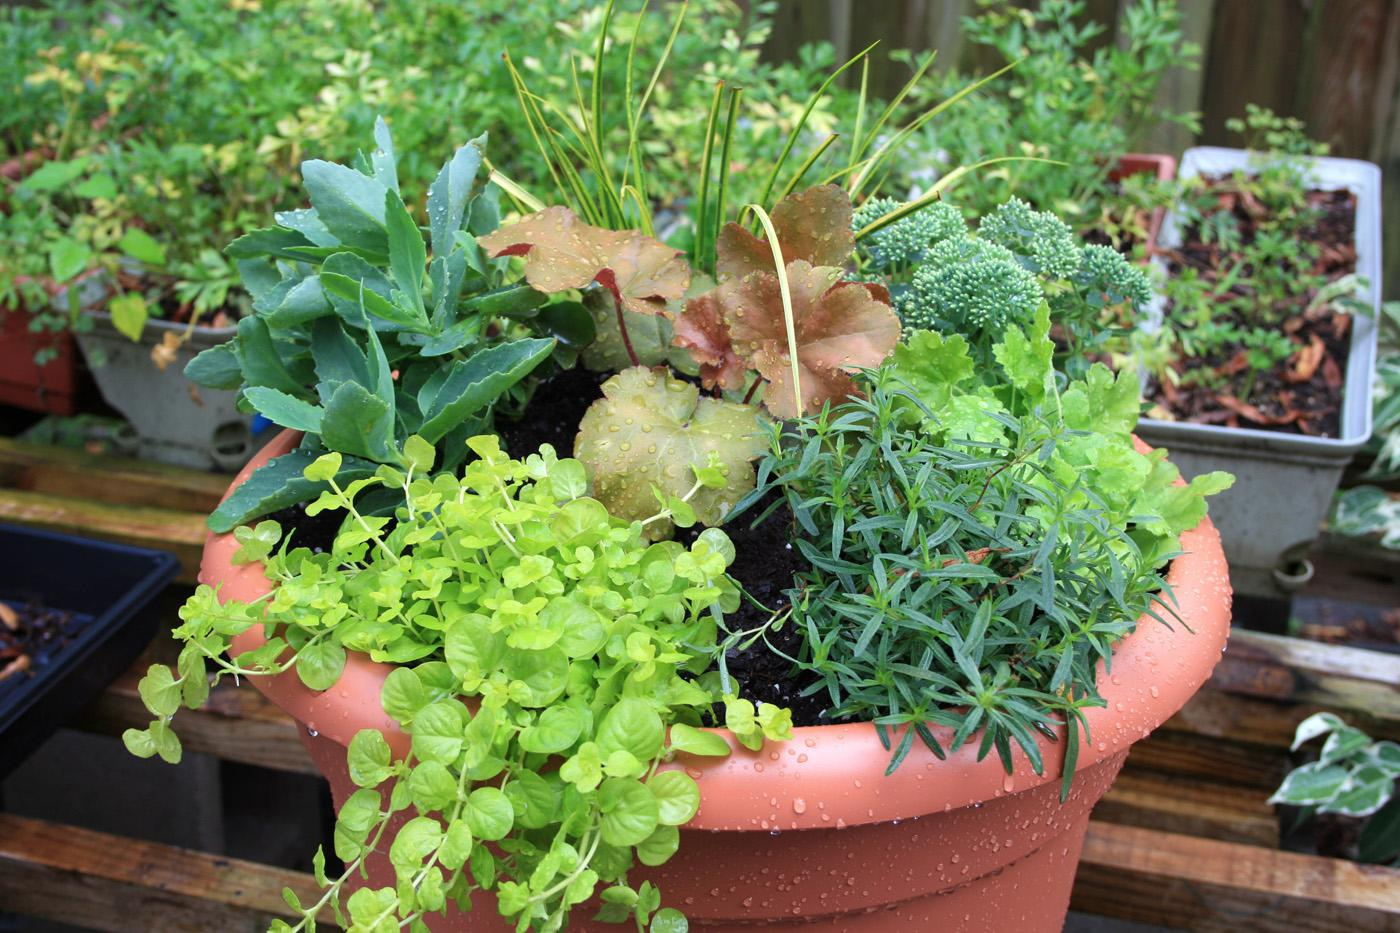 Perennials In Containers Offer Gardeners Options Mississippi State University Extension Service